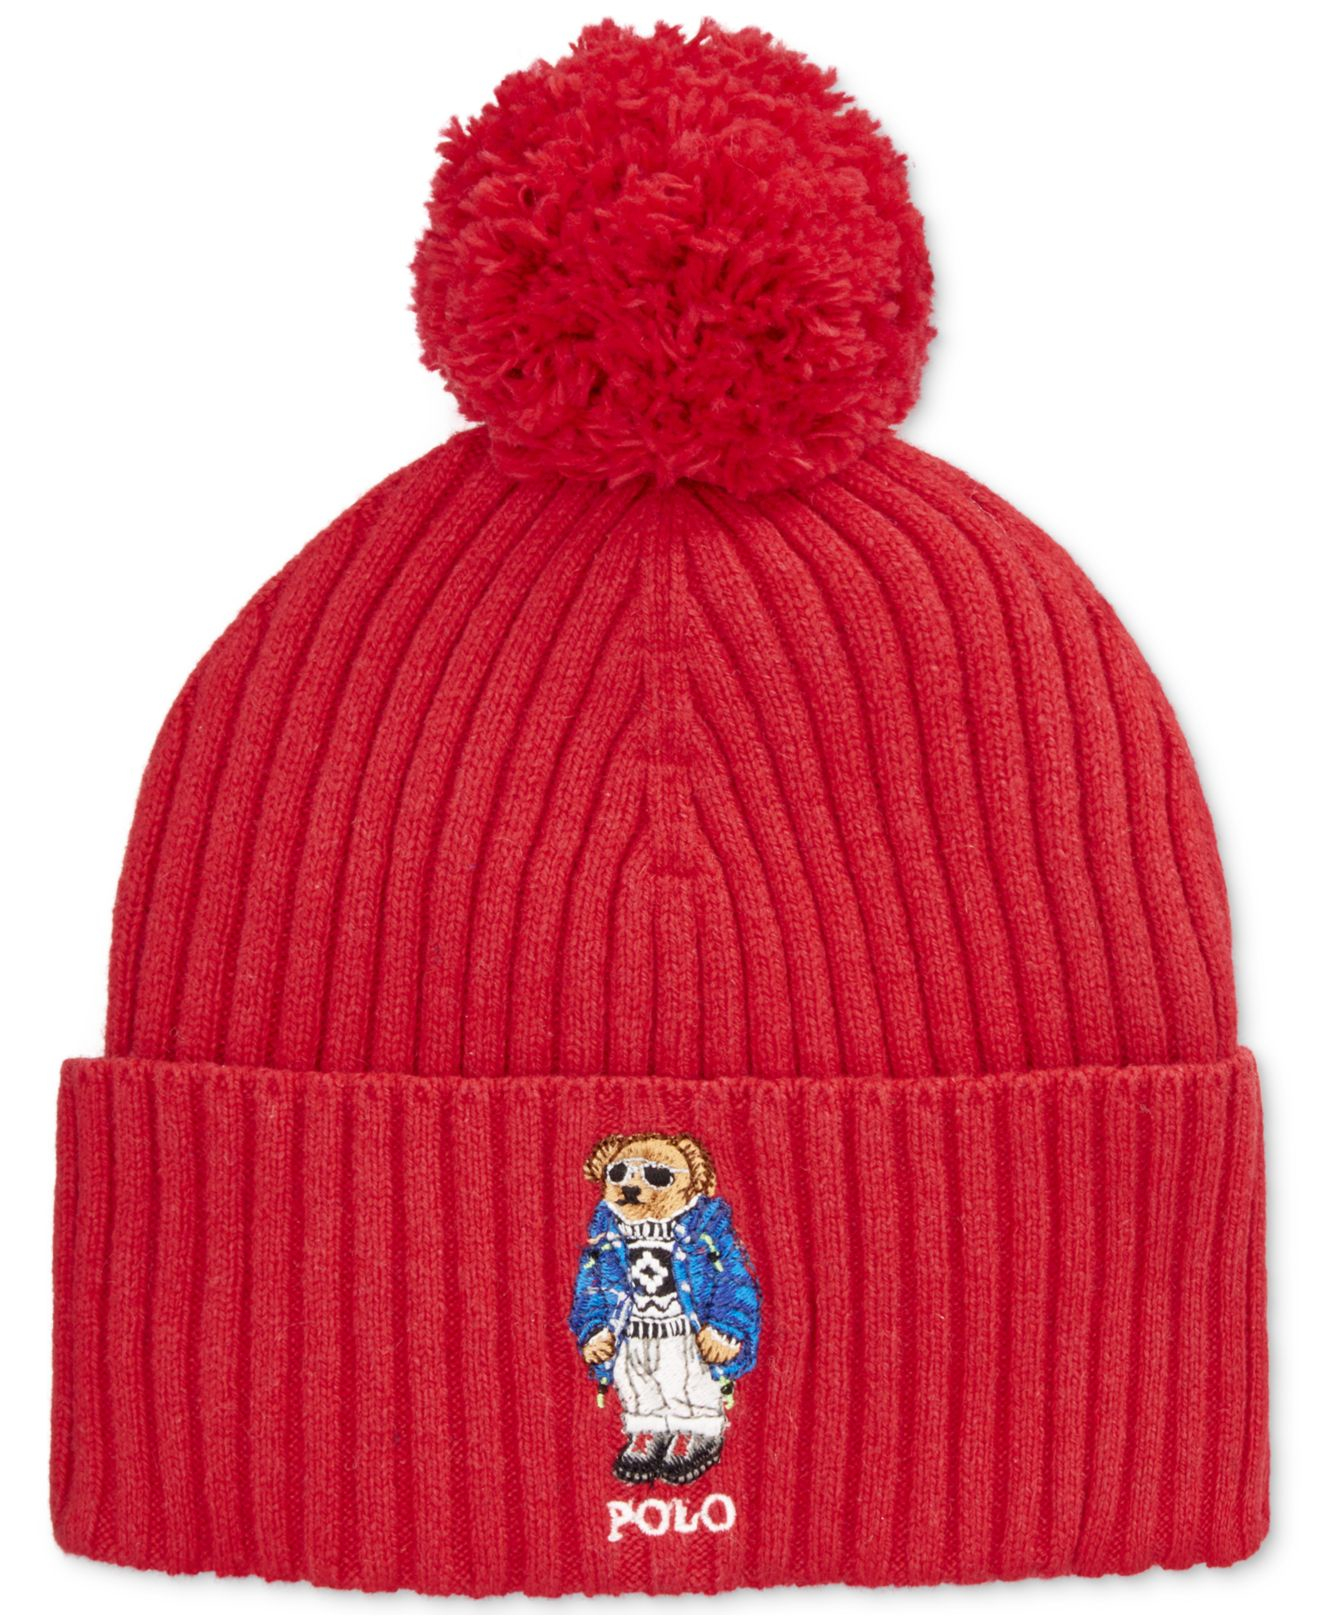 Lyst - Polo Ralph Lauren Ski Bear Pom-knit Cuffed Beanie in Red for Men 64464510a31